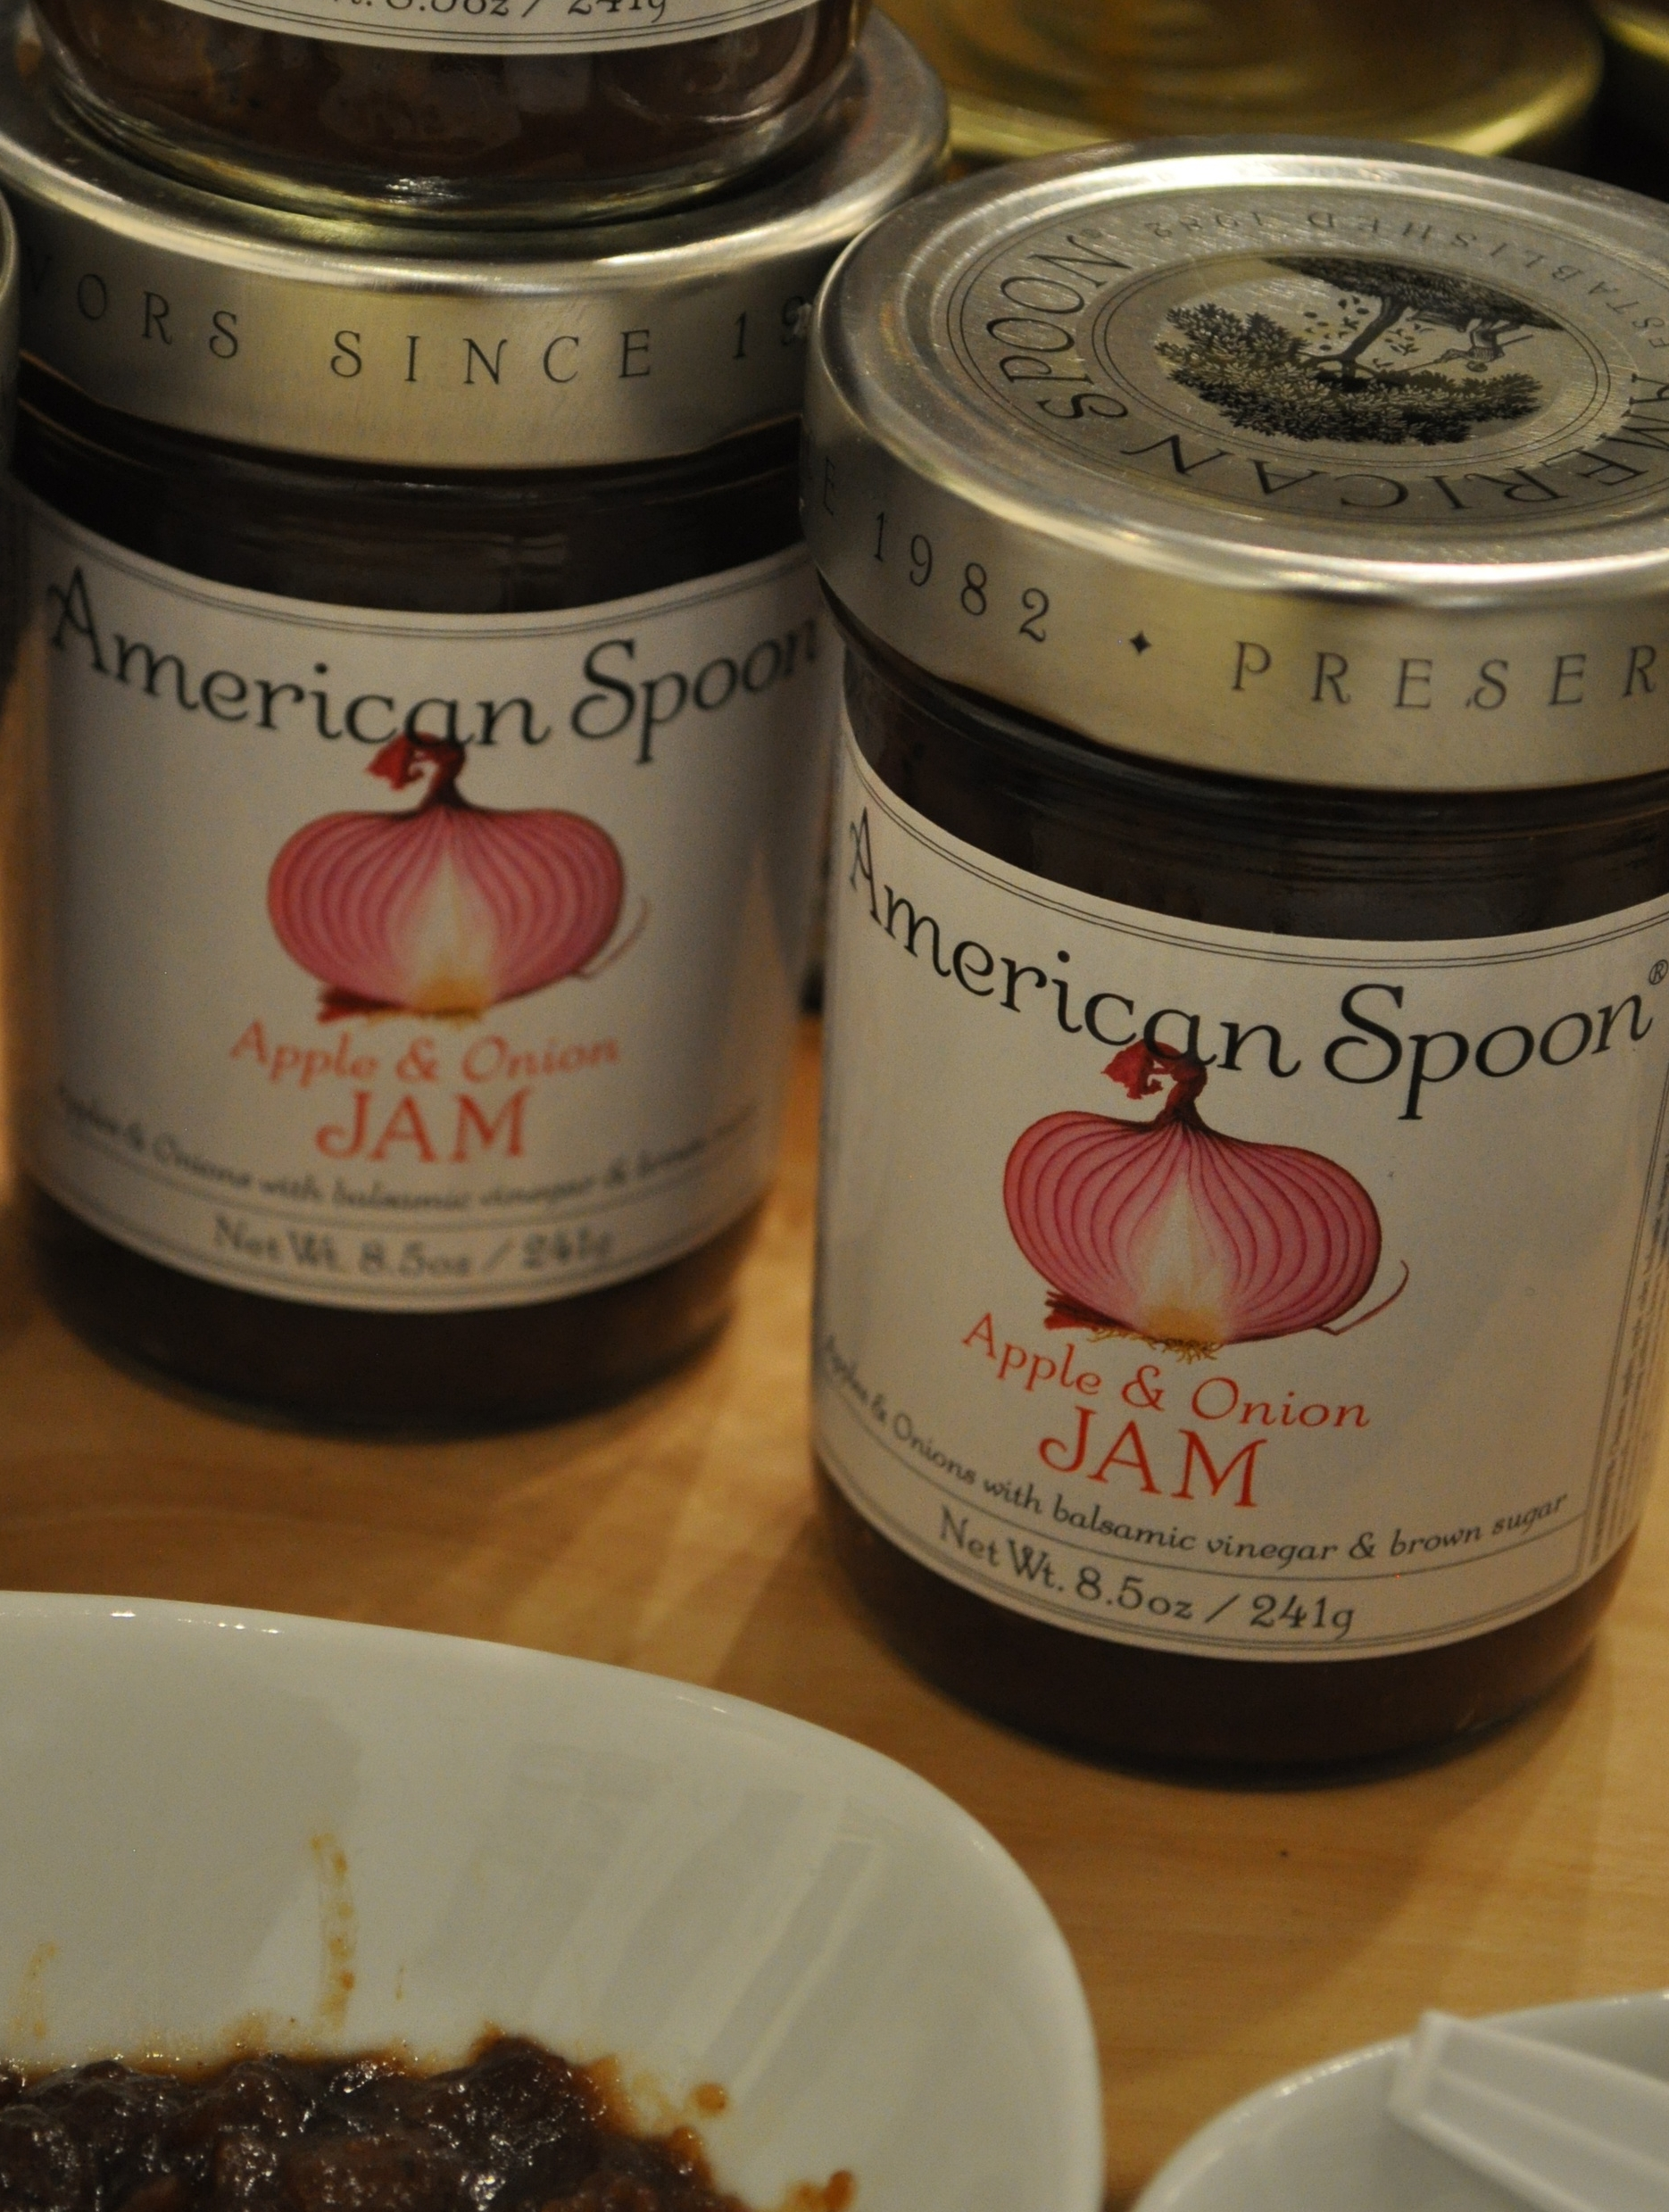 American Spoon's Apple and Onion Jam bursts with savory, sweet and tart flavors. Great to accompany a sharp cheddar cheese, or to turn your chicken or pork up a notch.